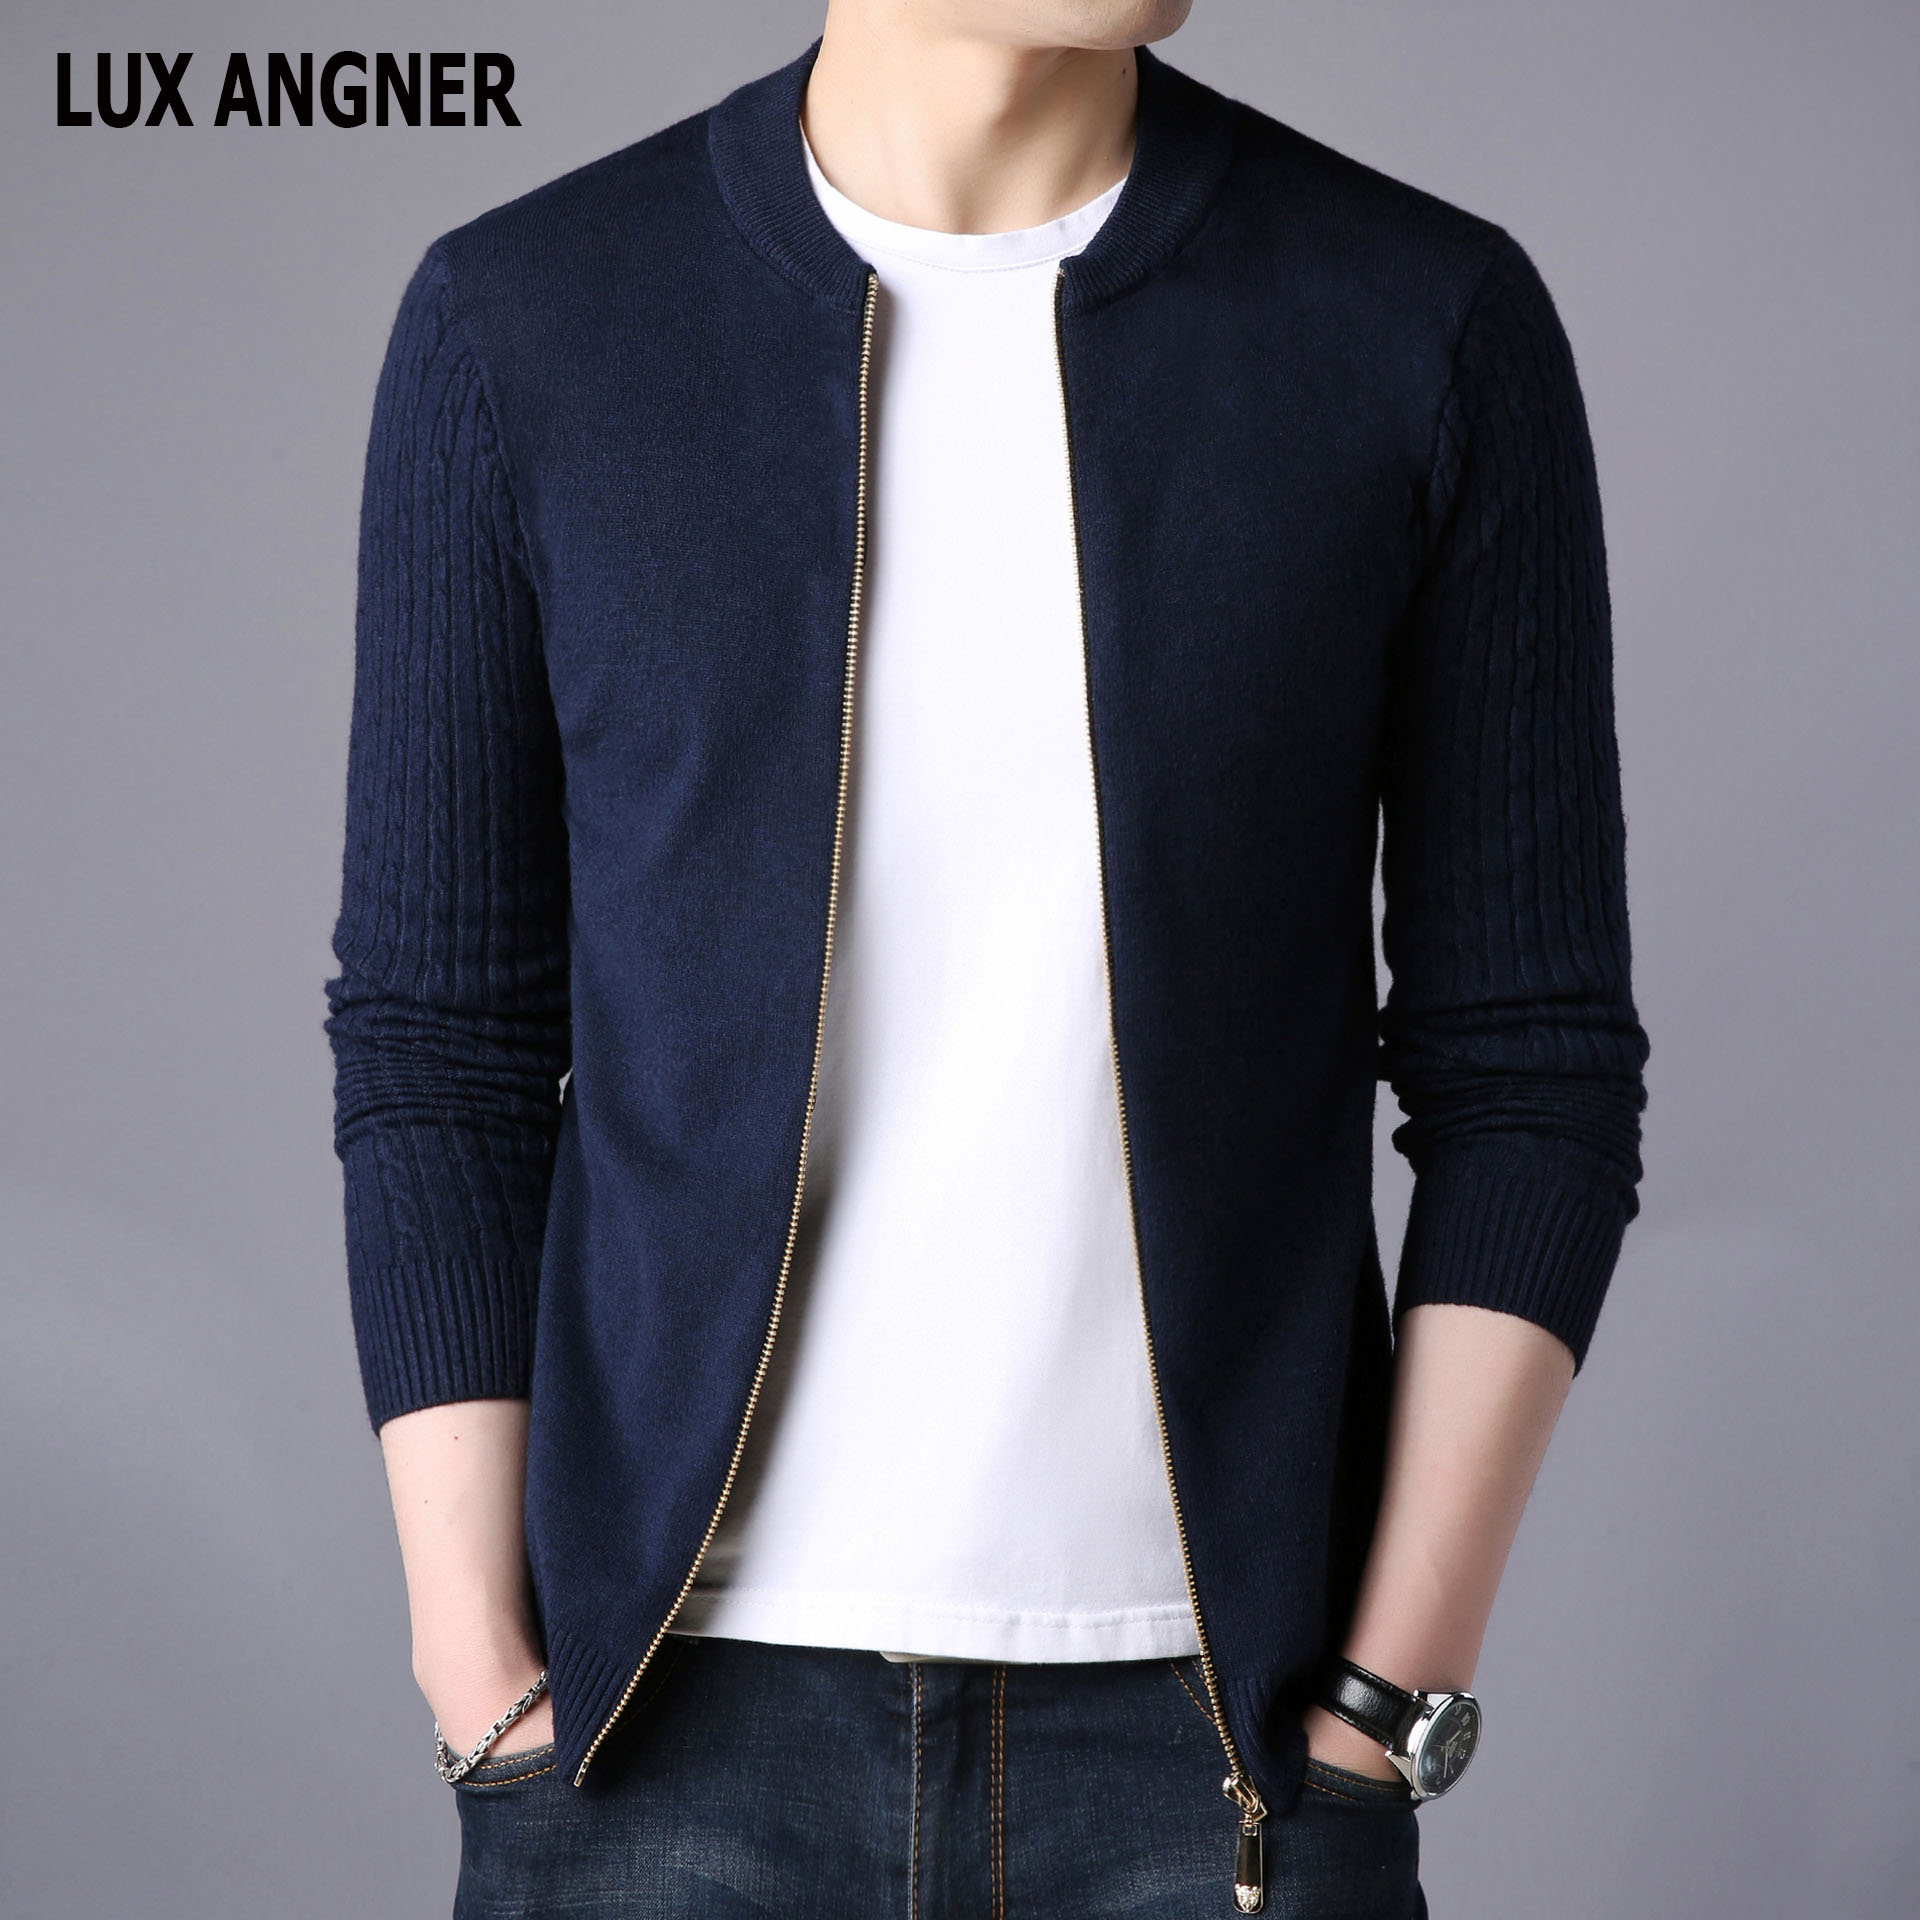 2019 Spring Autumn New Men's Cardigan Sweater Men Slim Casual Knitted Sweater Cotton Sweater Men Cardigans Coat